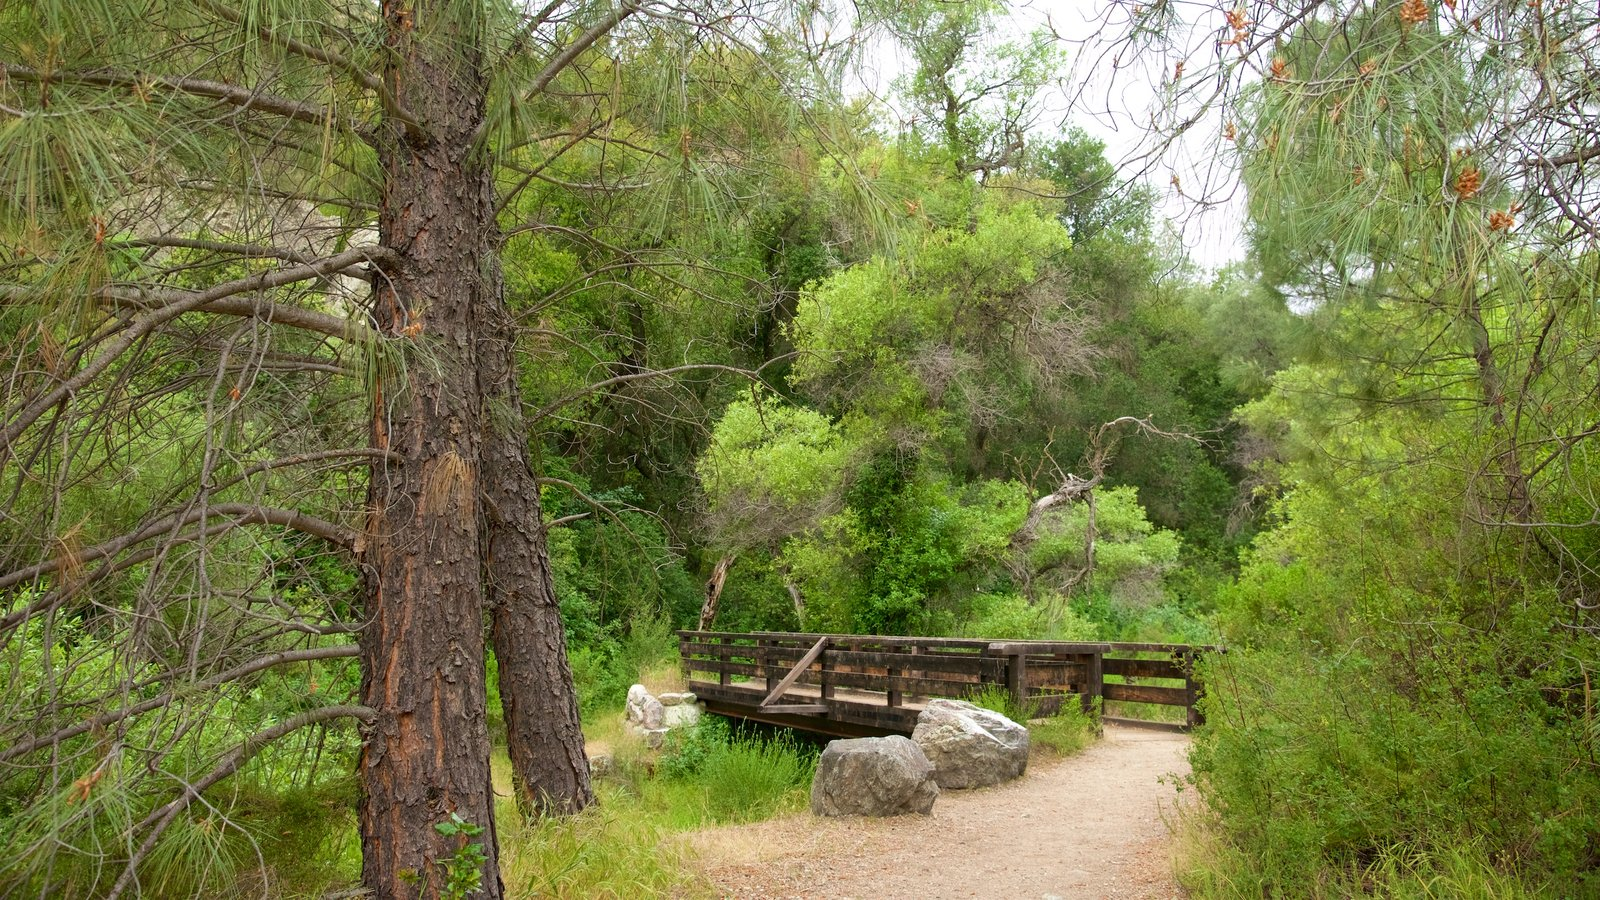 Pinnacles National Park featuring a bridge and forest scenes